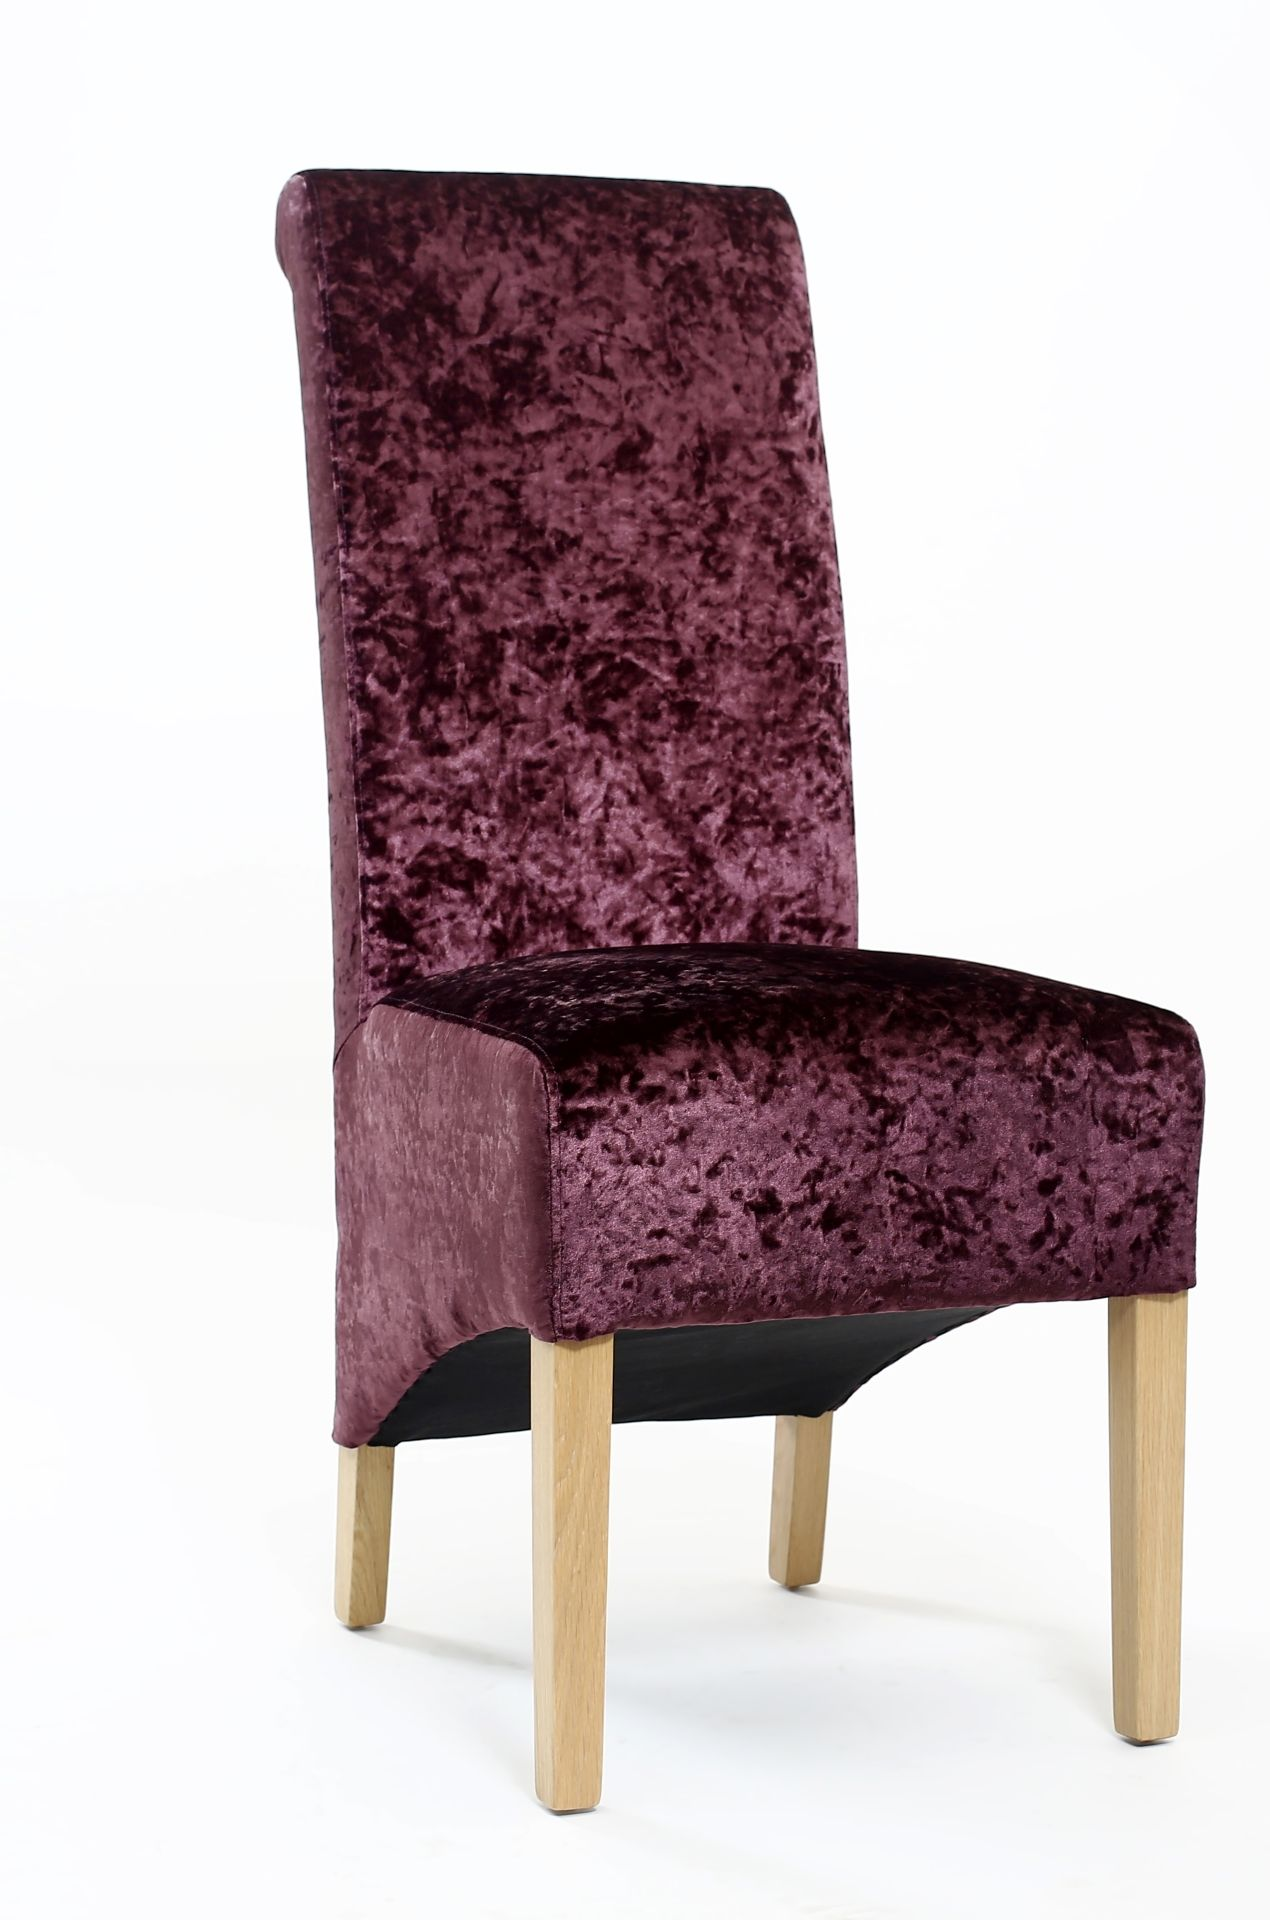 Krista Crushed Velvet Dining chair in Grape velvet